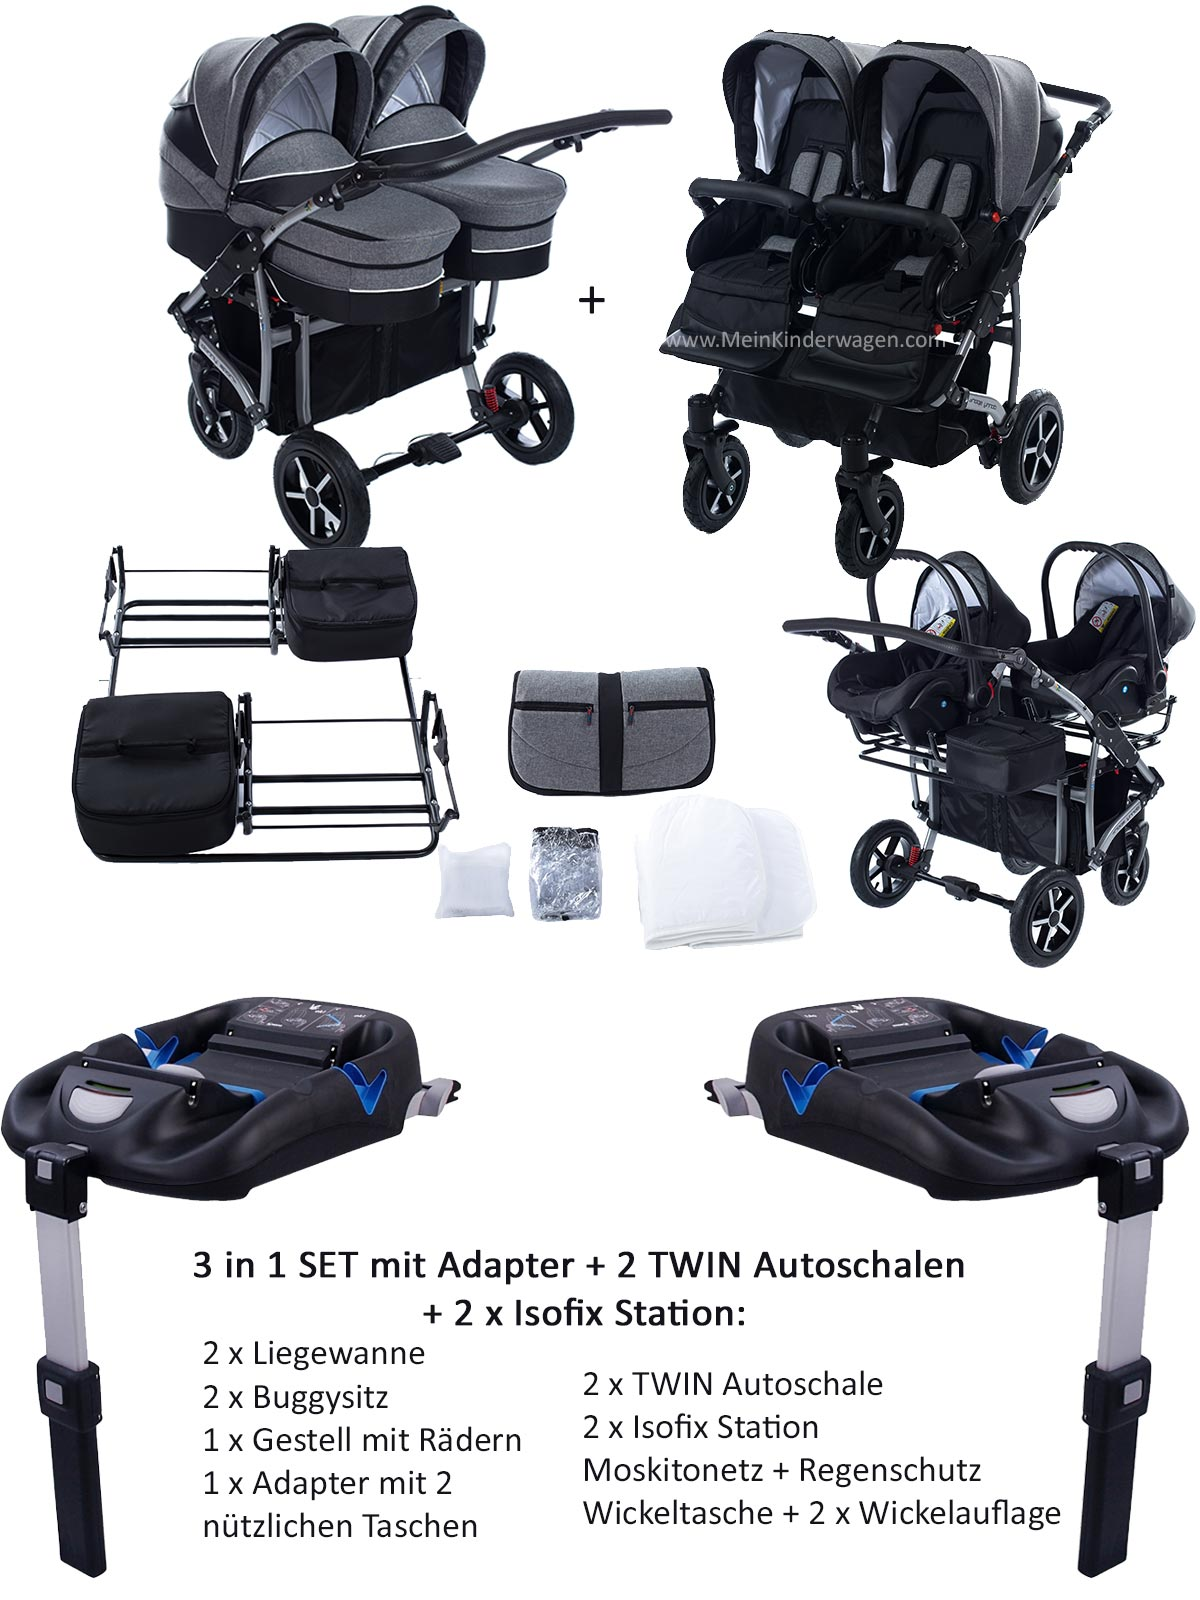 Twin Zwillingswagen 3 in 1 Set  mit Adapter +2 Autoschalen+2 isofix